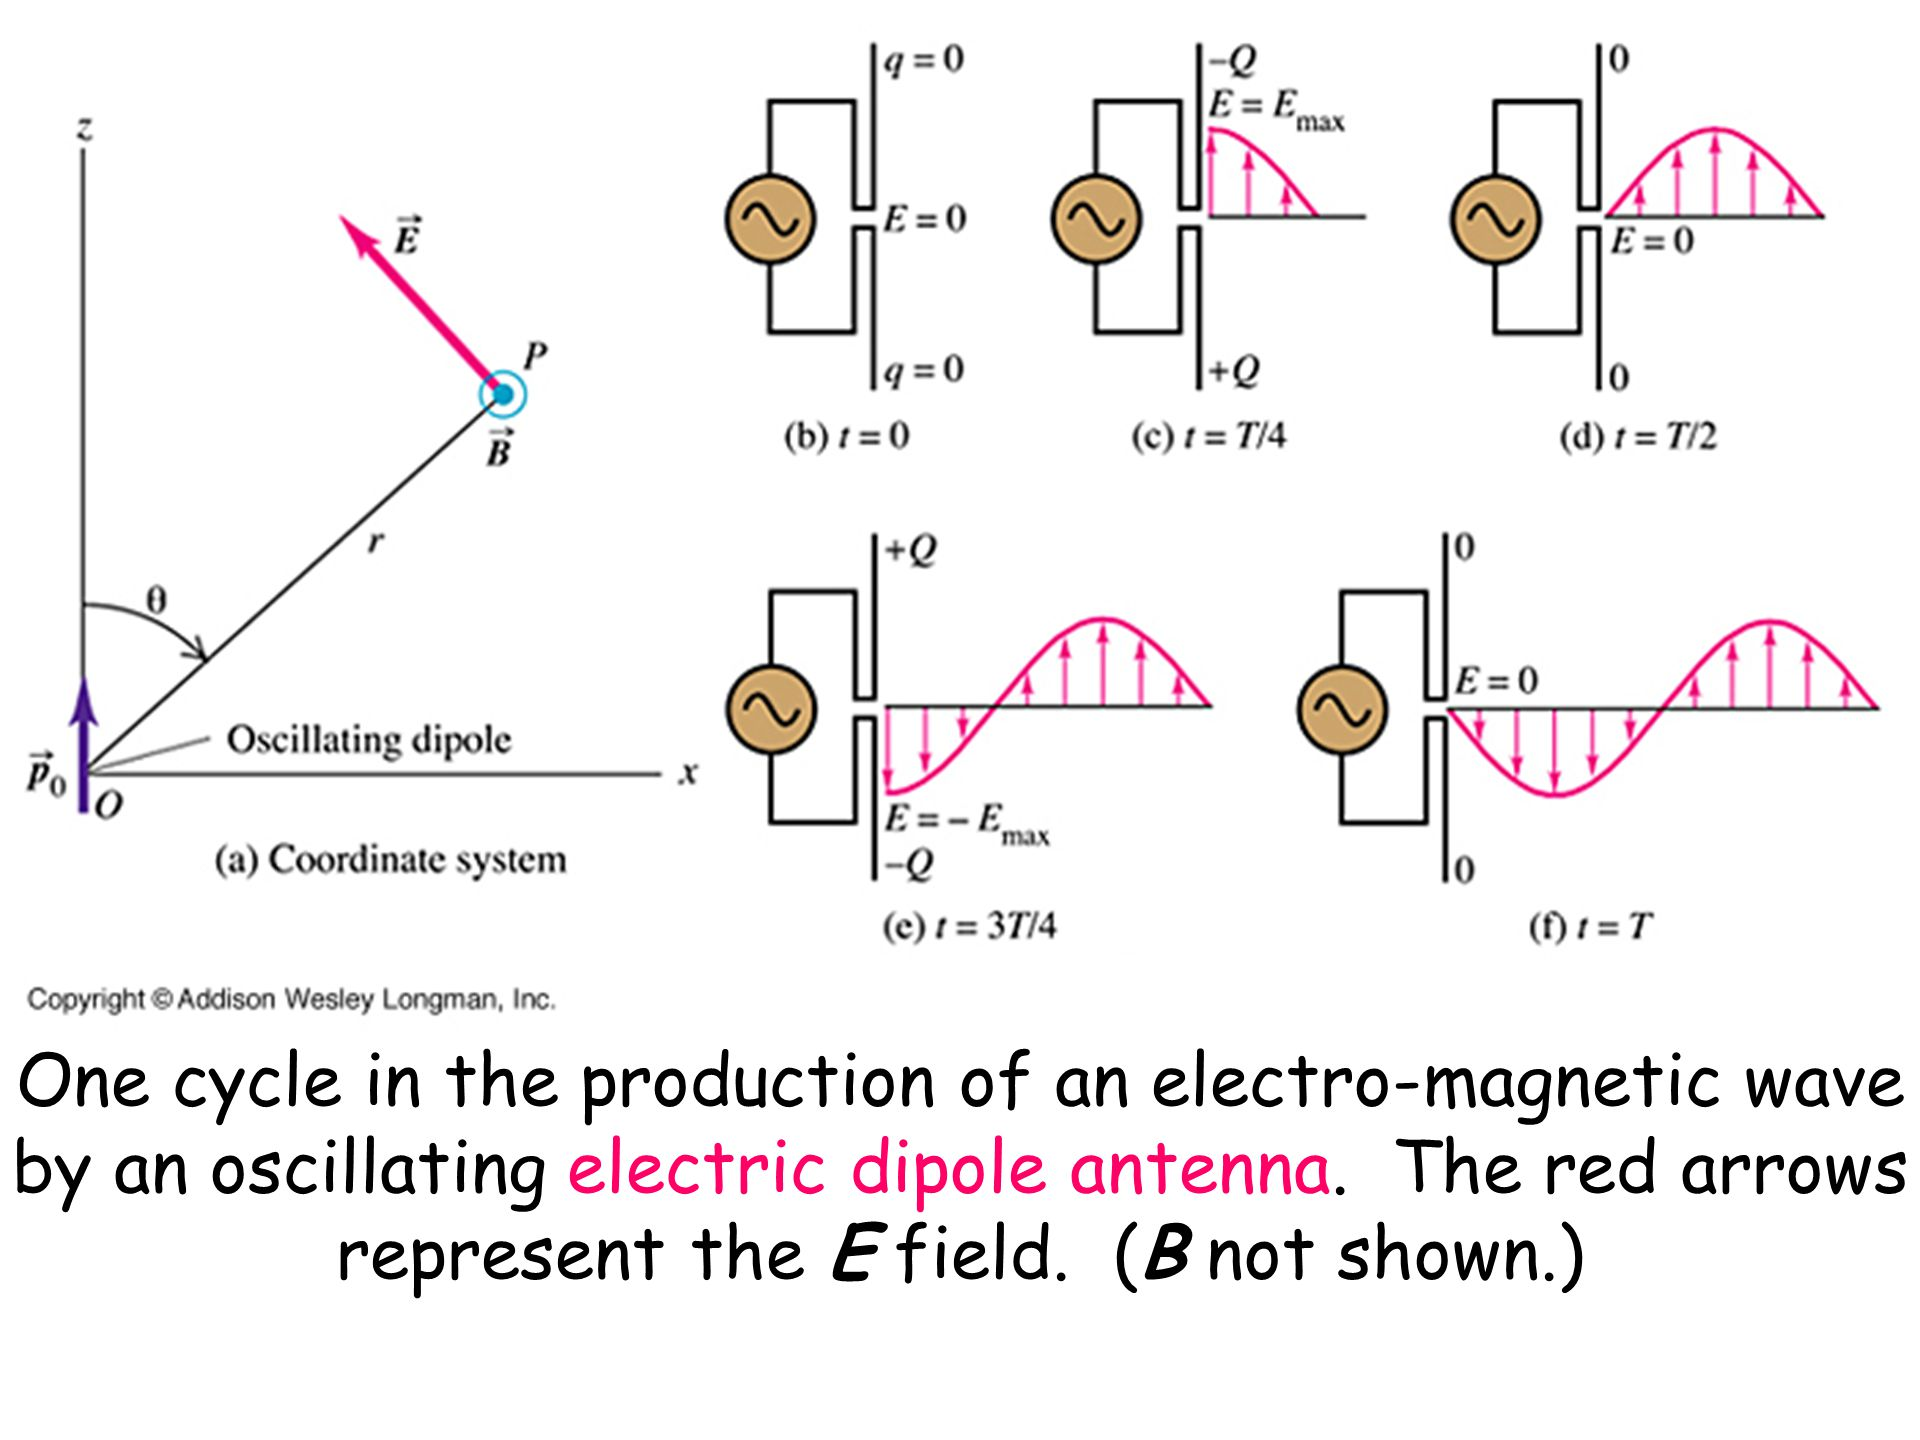 One cycle in the production of an electro-magnetic wave by an oscillating electric dipole antenna.